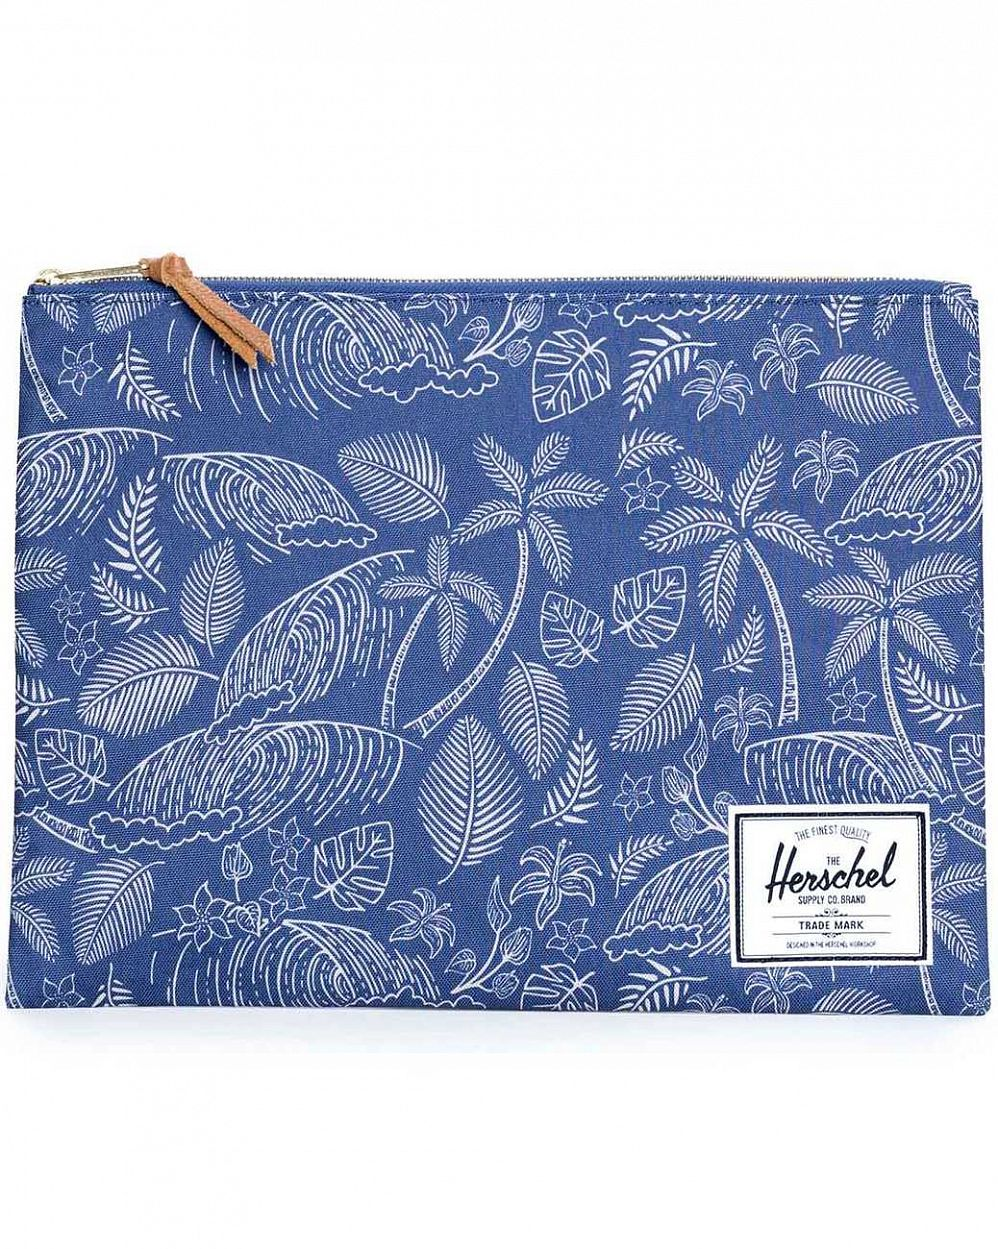 Клатч Herschel Network Extra Large Kingston отзывы